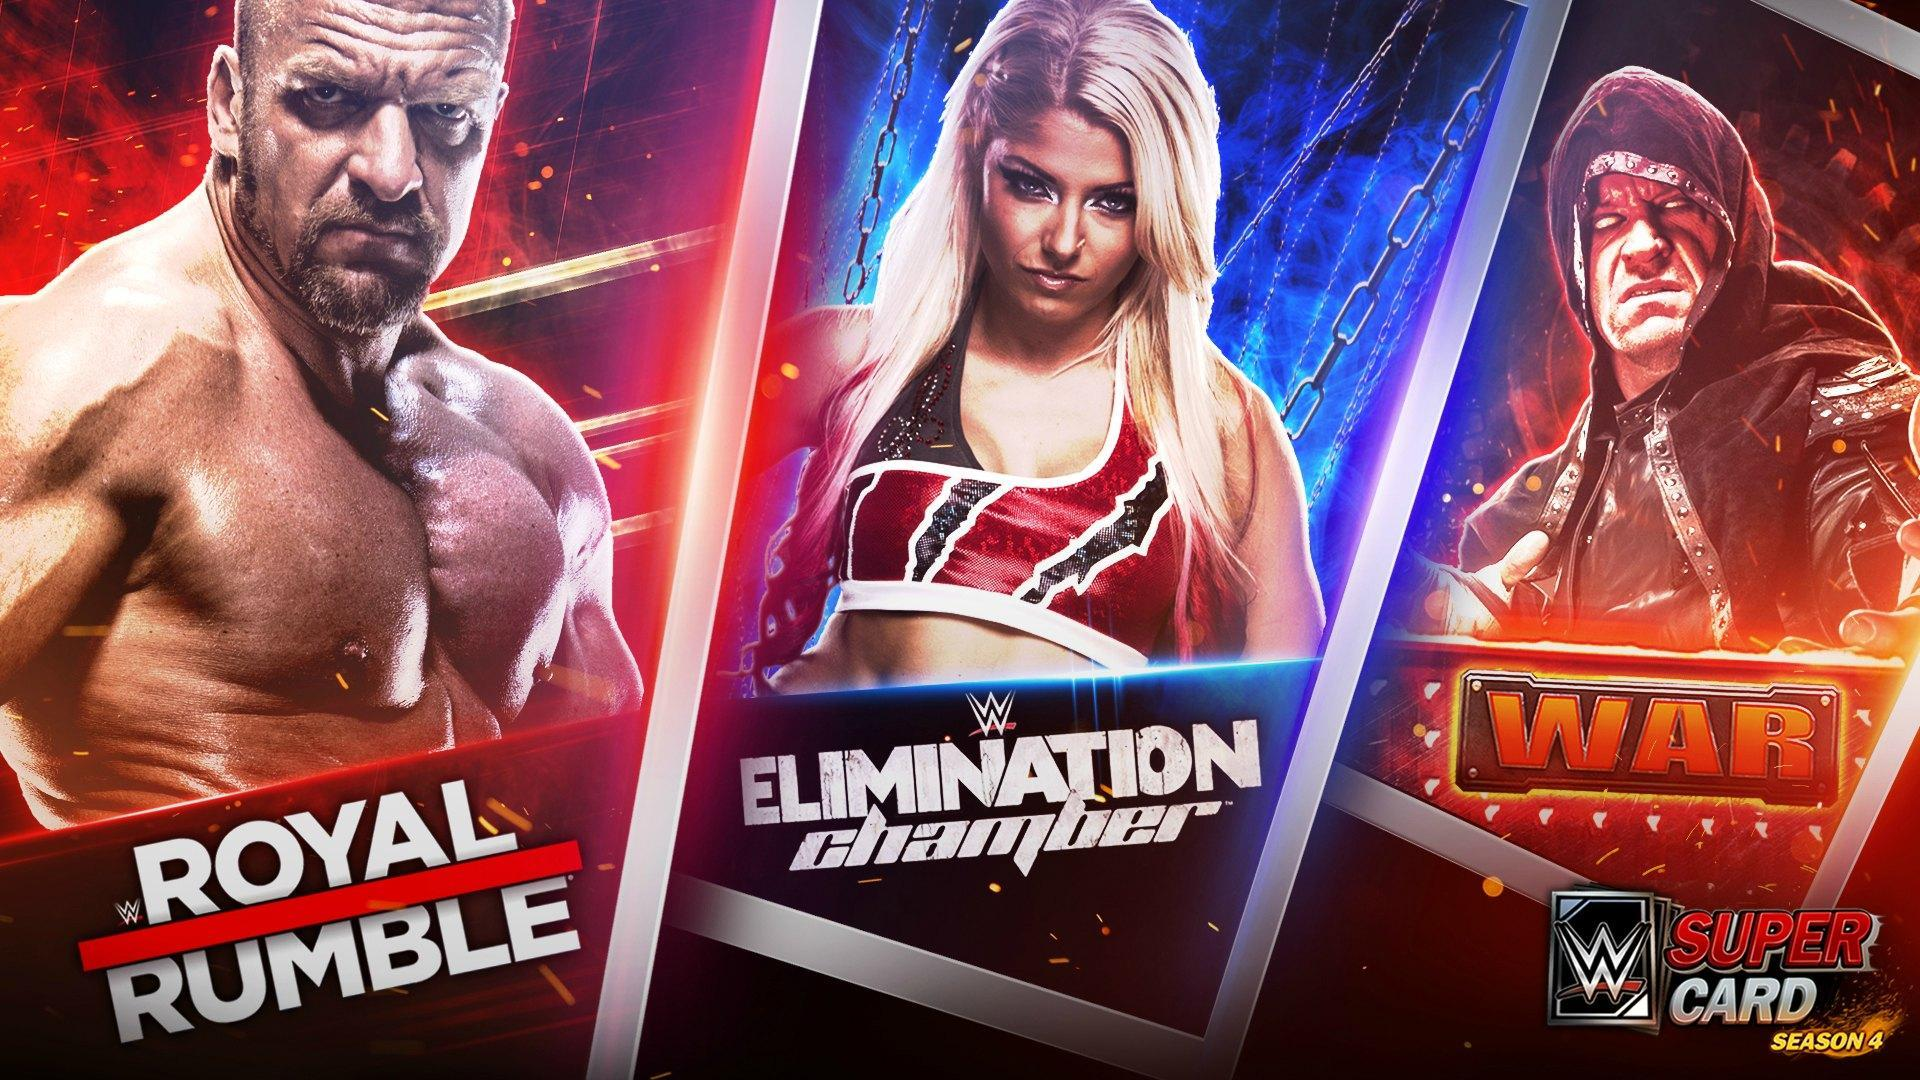 WWE SuperCard Game Modes Breakdown (updated to Season 4)